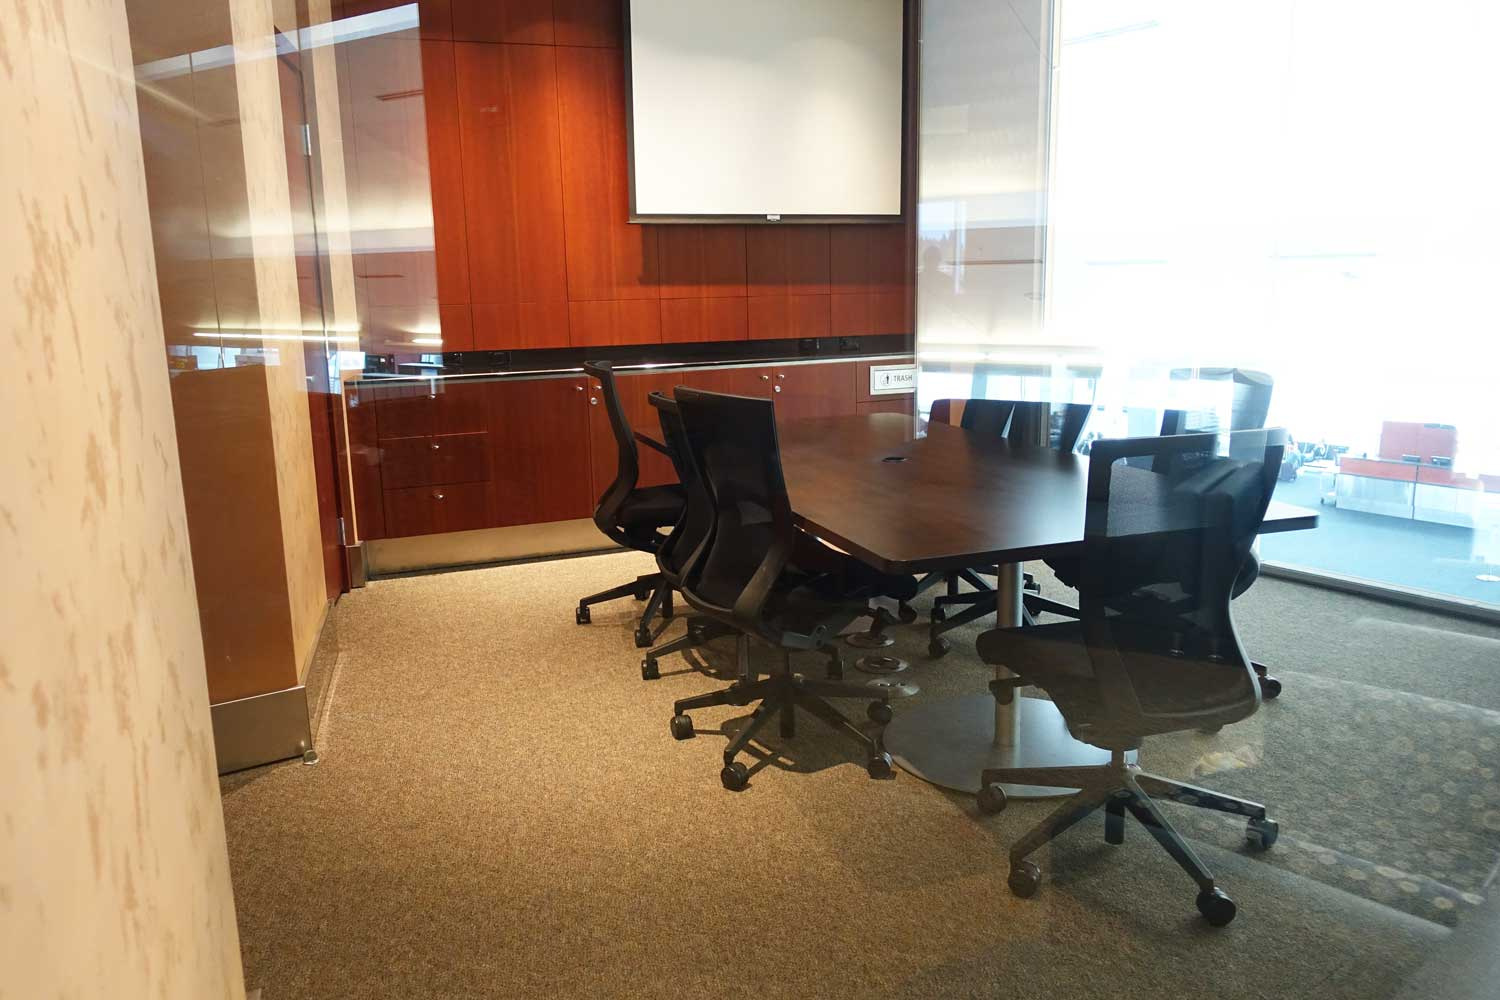 The Club at SEA conference room